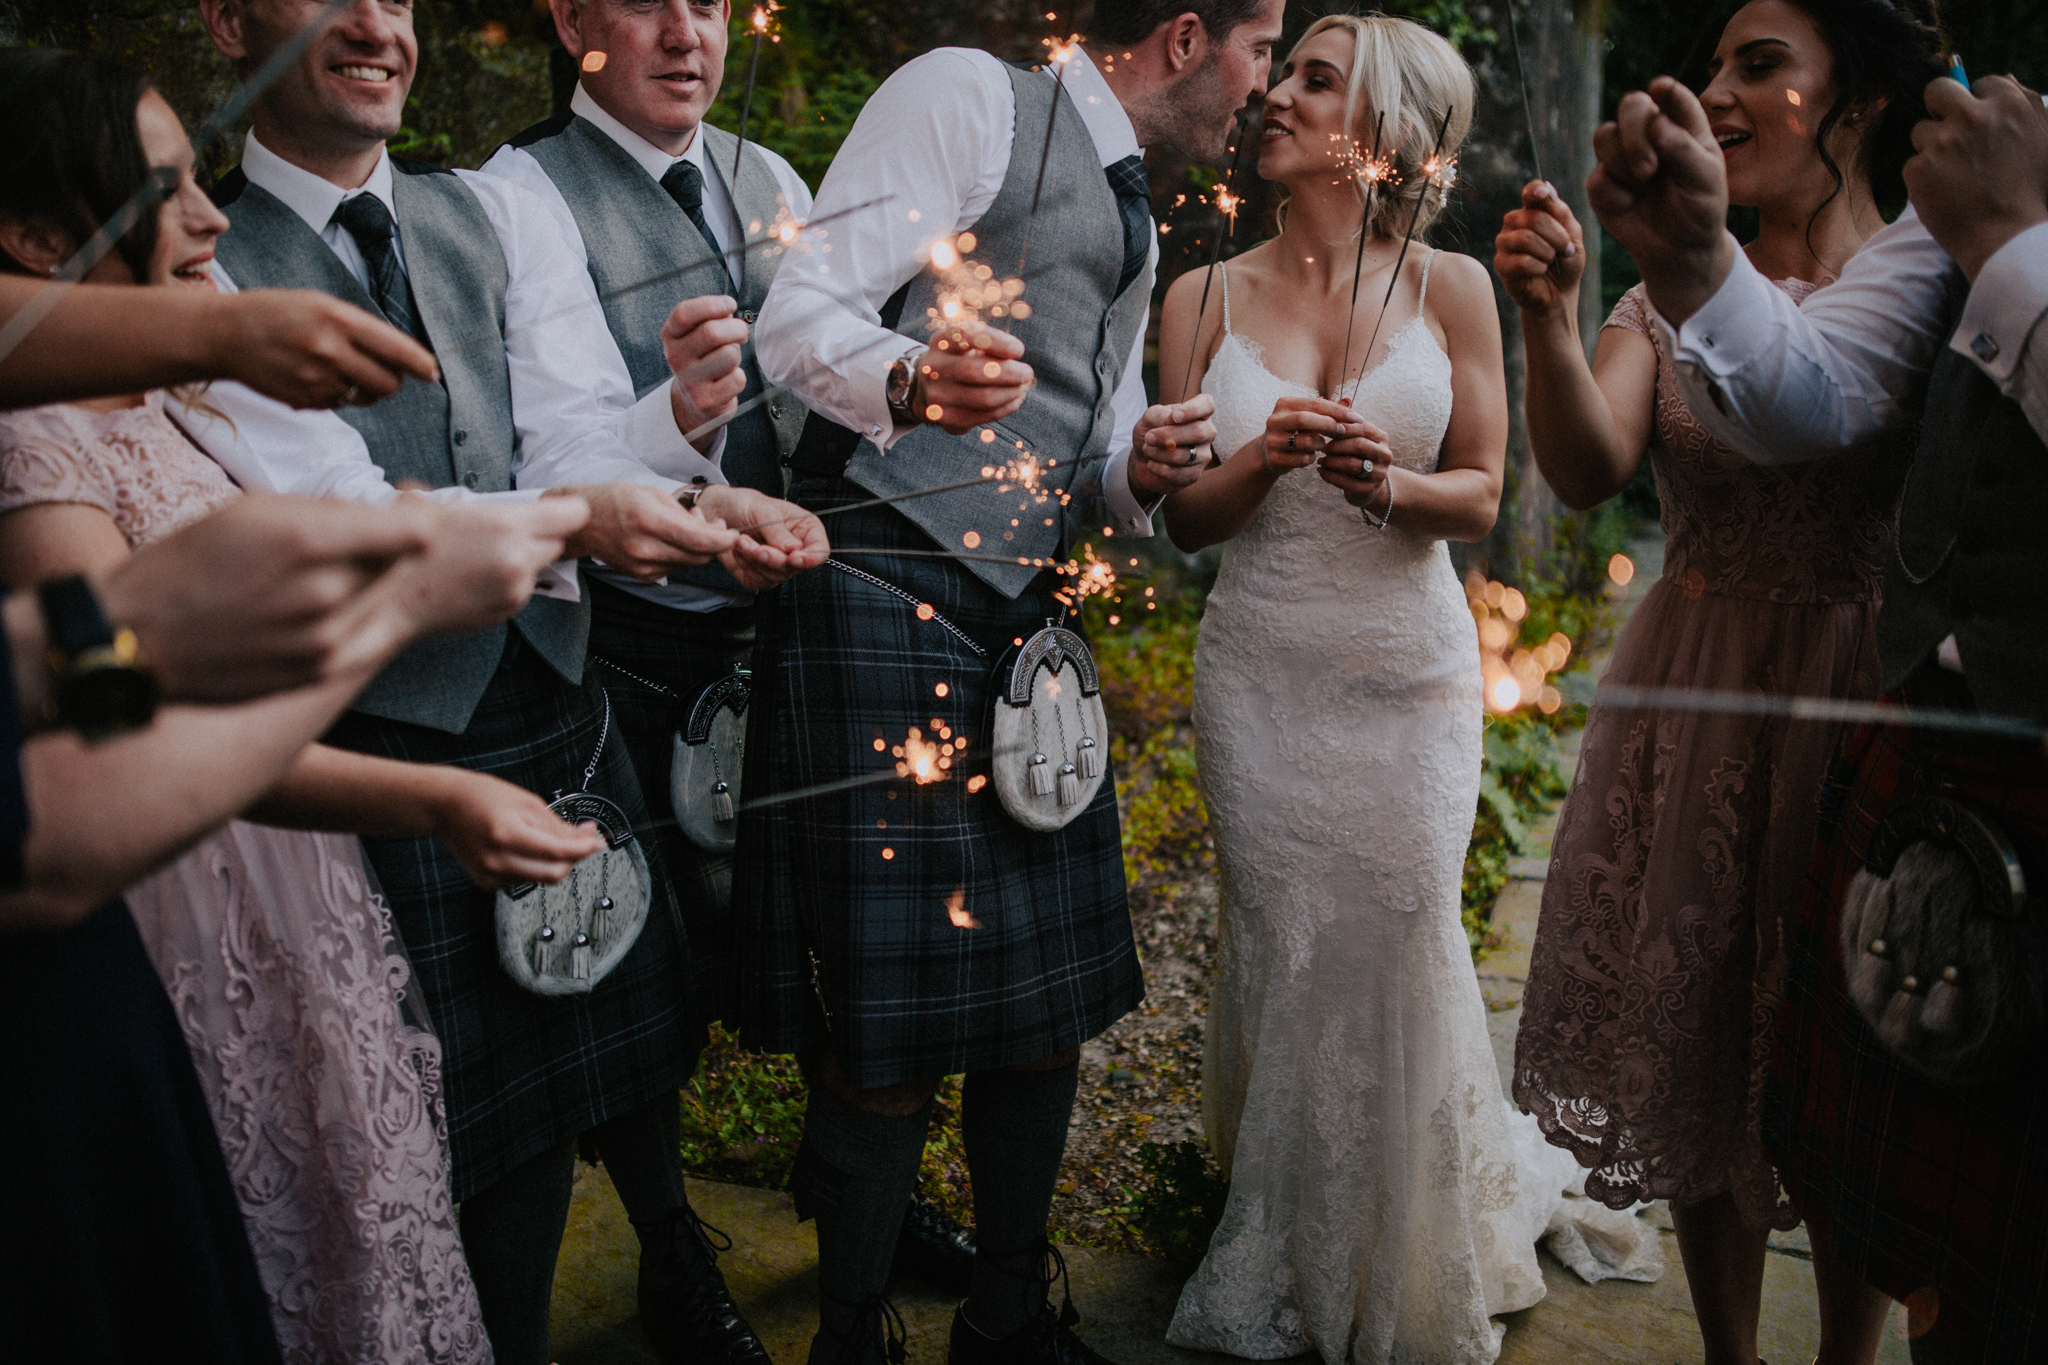 Glasgow wedding photography at the Crossbasket castle, sparklers shot